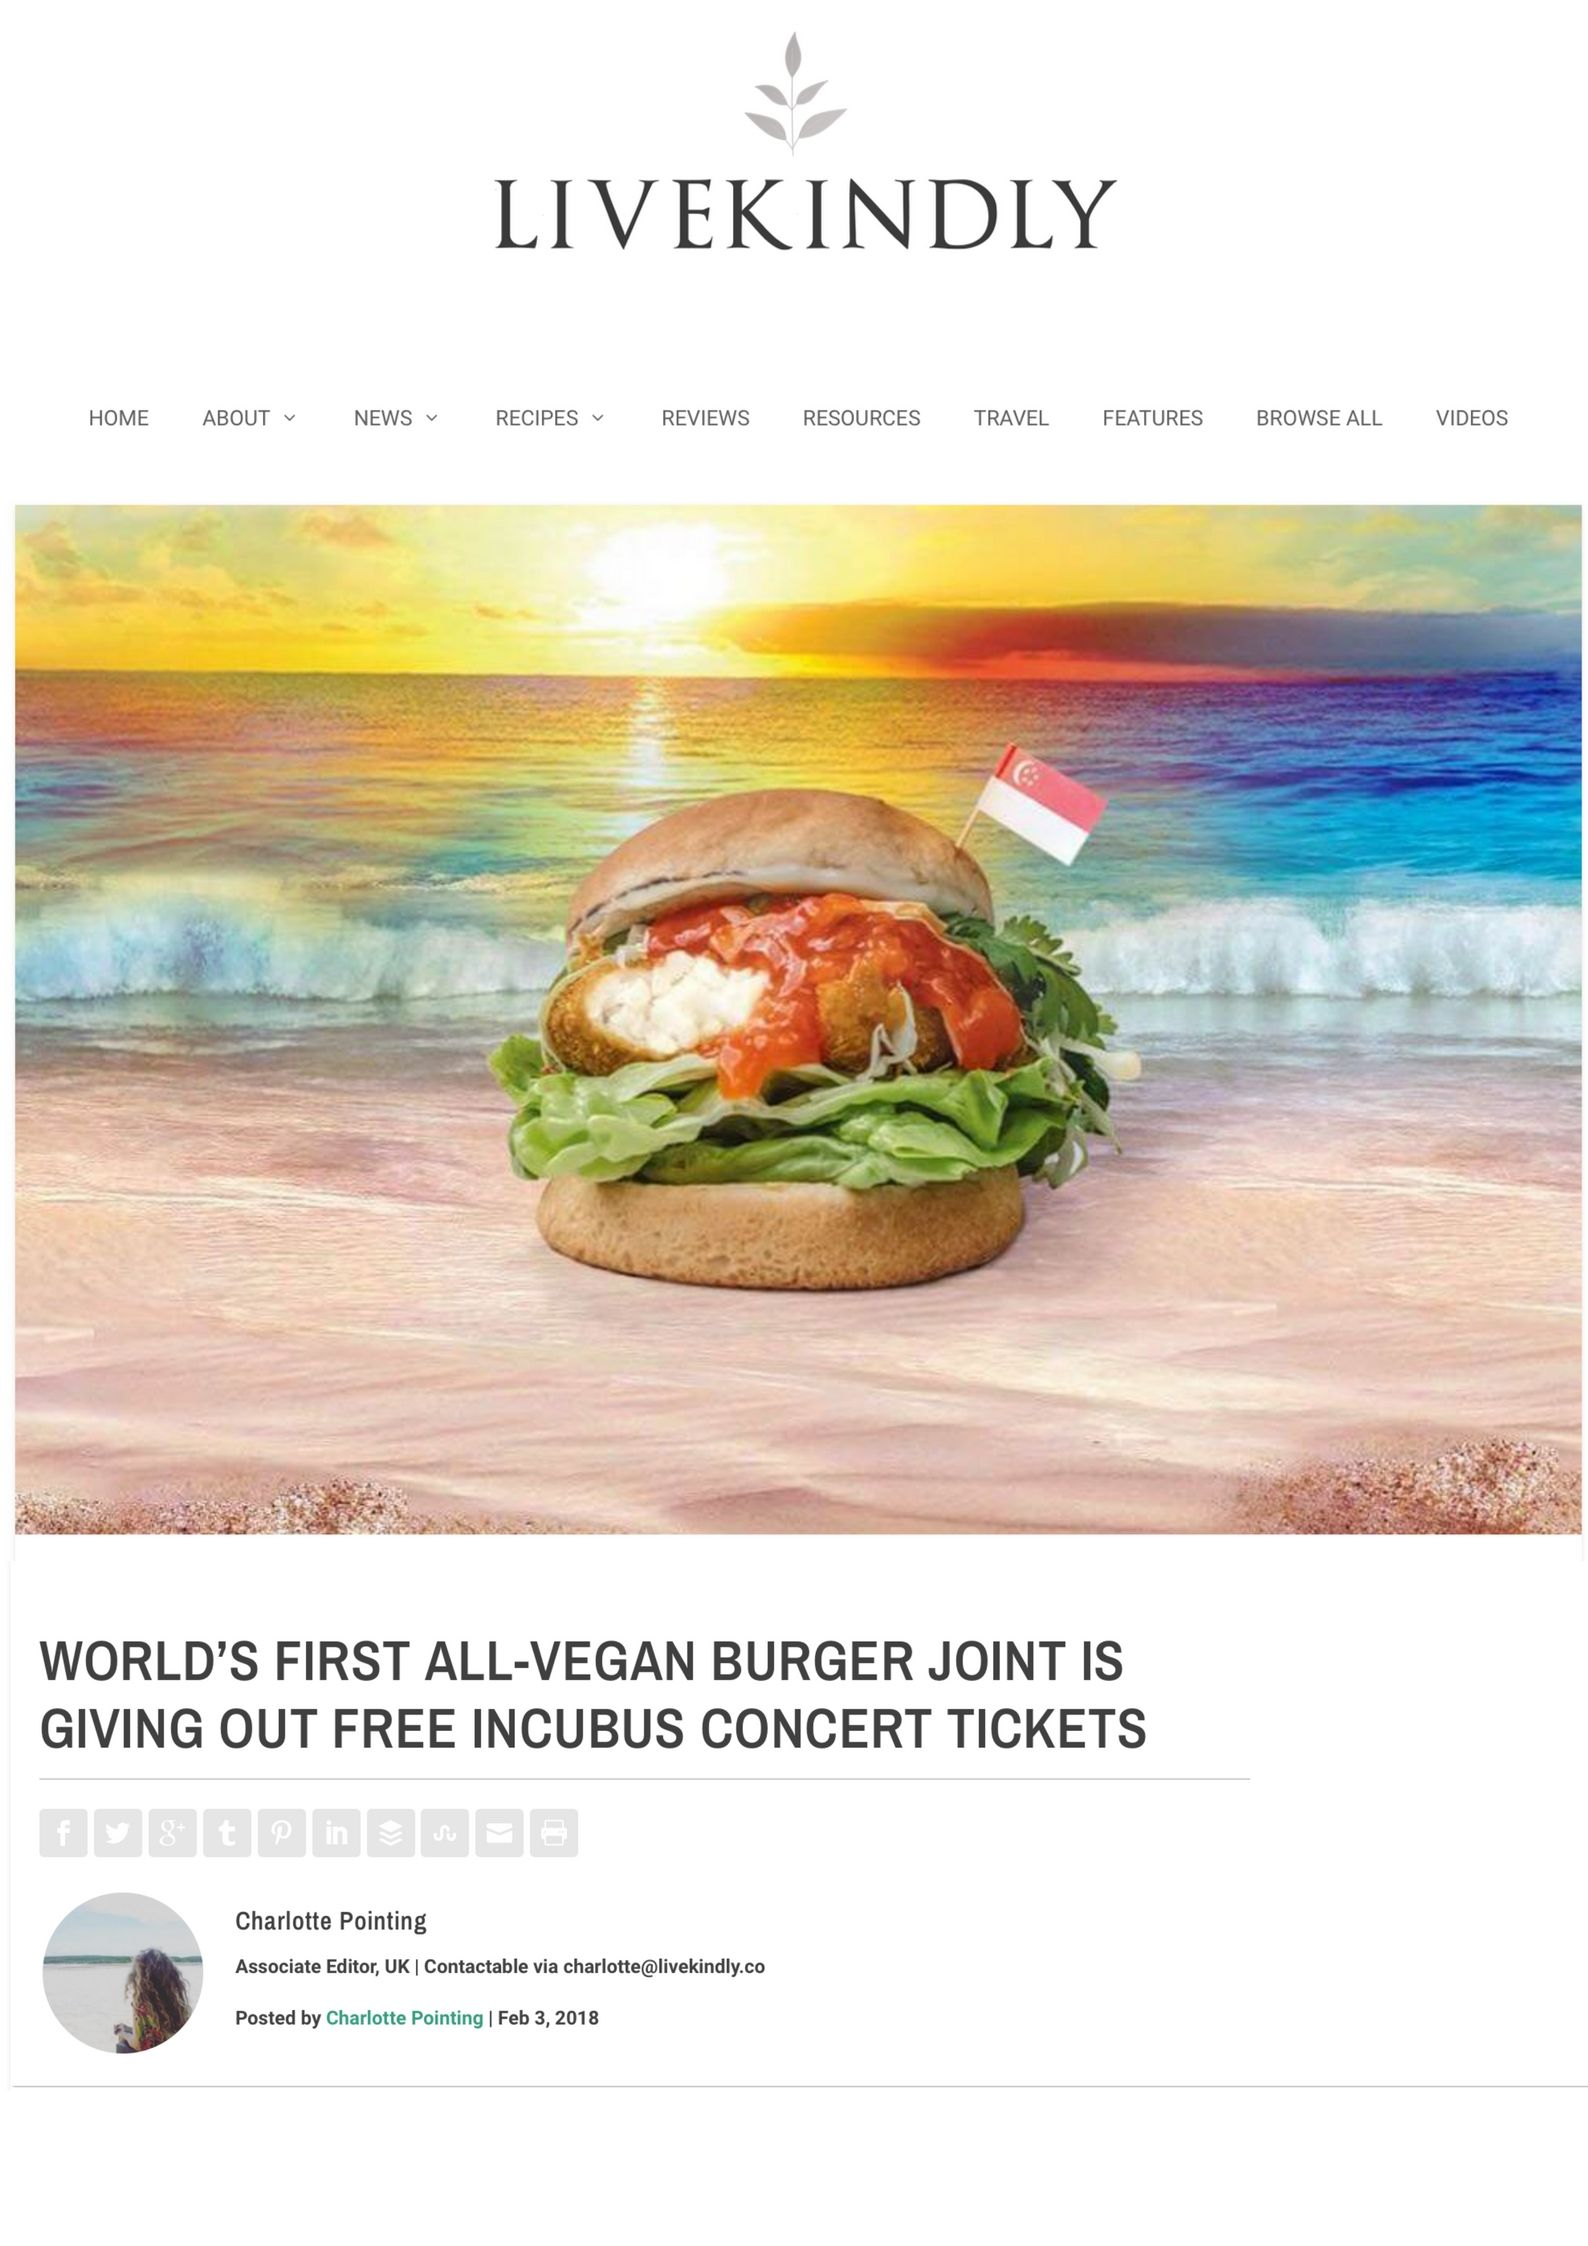 Popular vegan fast food joint, VeganBurg, has announced they are giving away 2 free tickets to see Incubus live in concert in Singapore on 9th February! The giveaway has been made possible through a partnership with .jpg